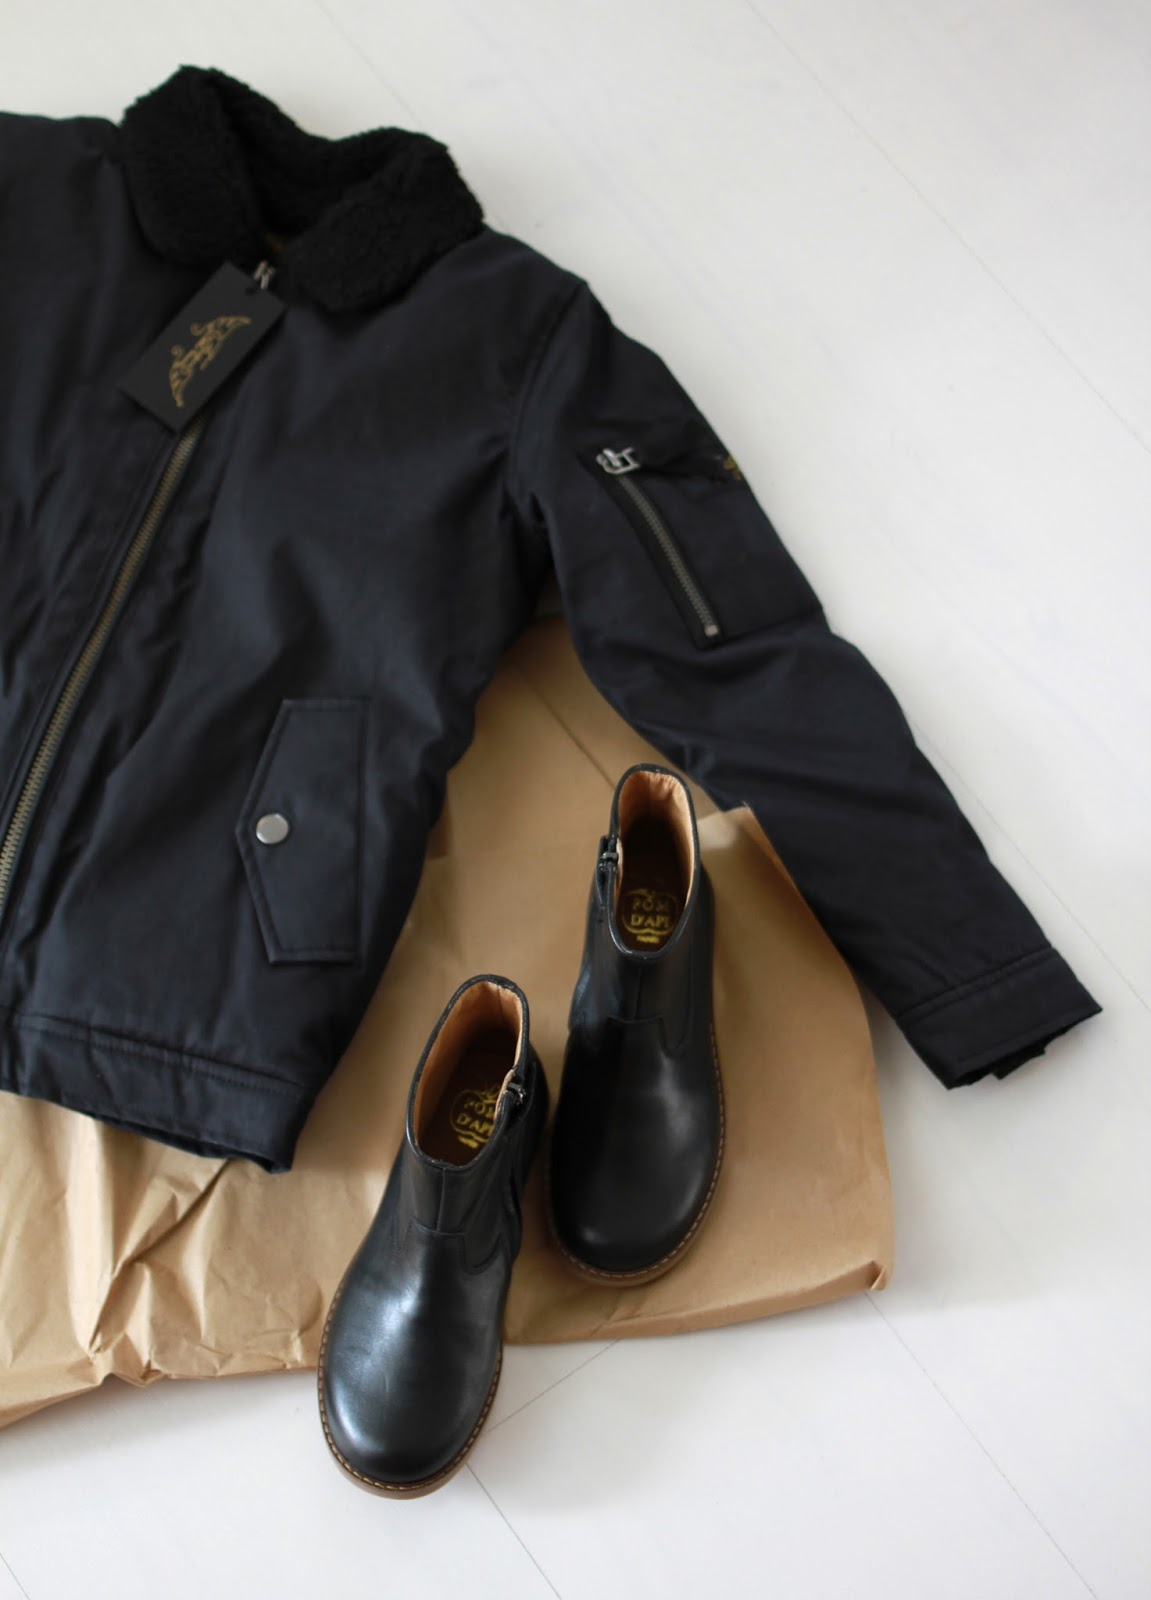 Ready for Fall with these leather boots and jacket for kids